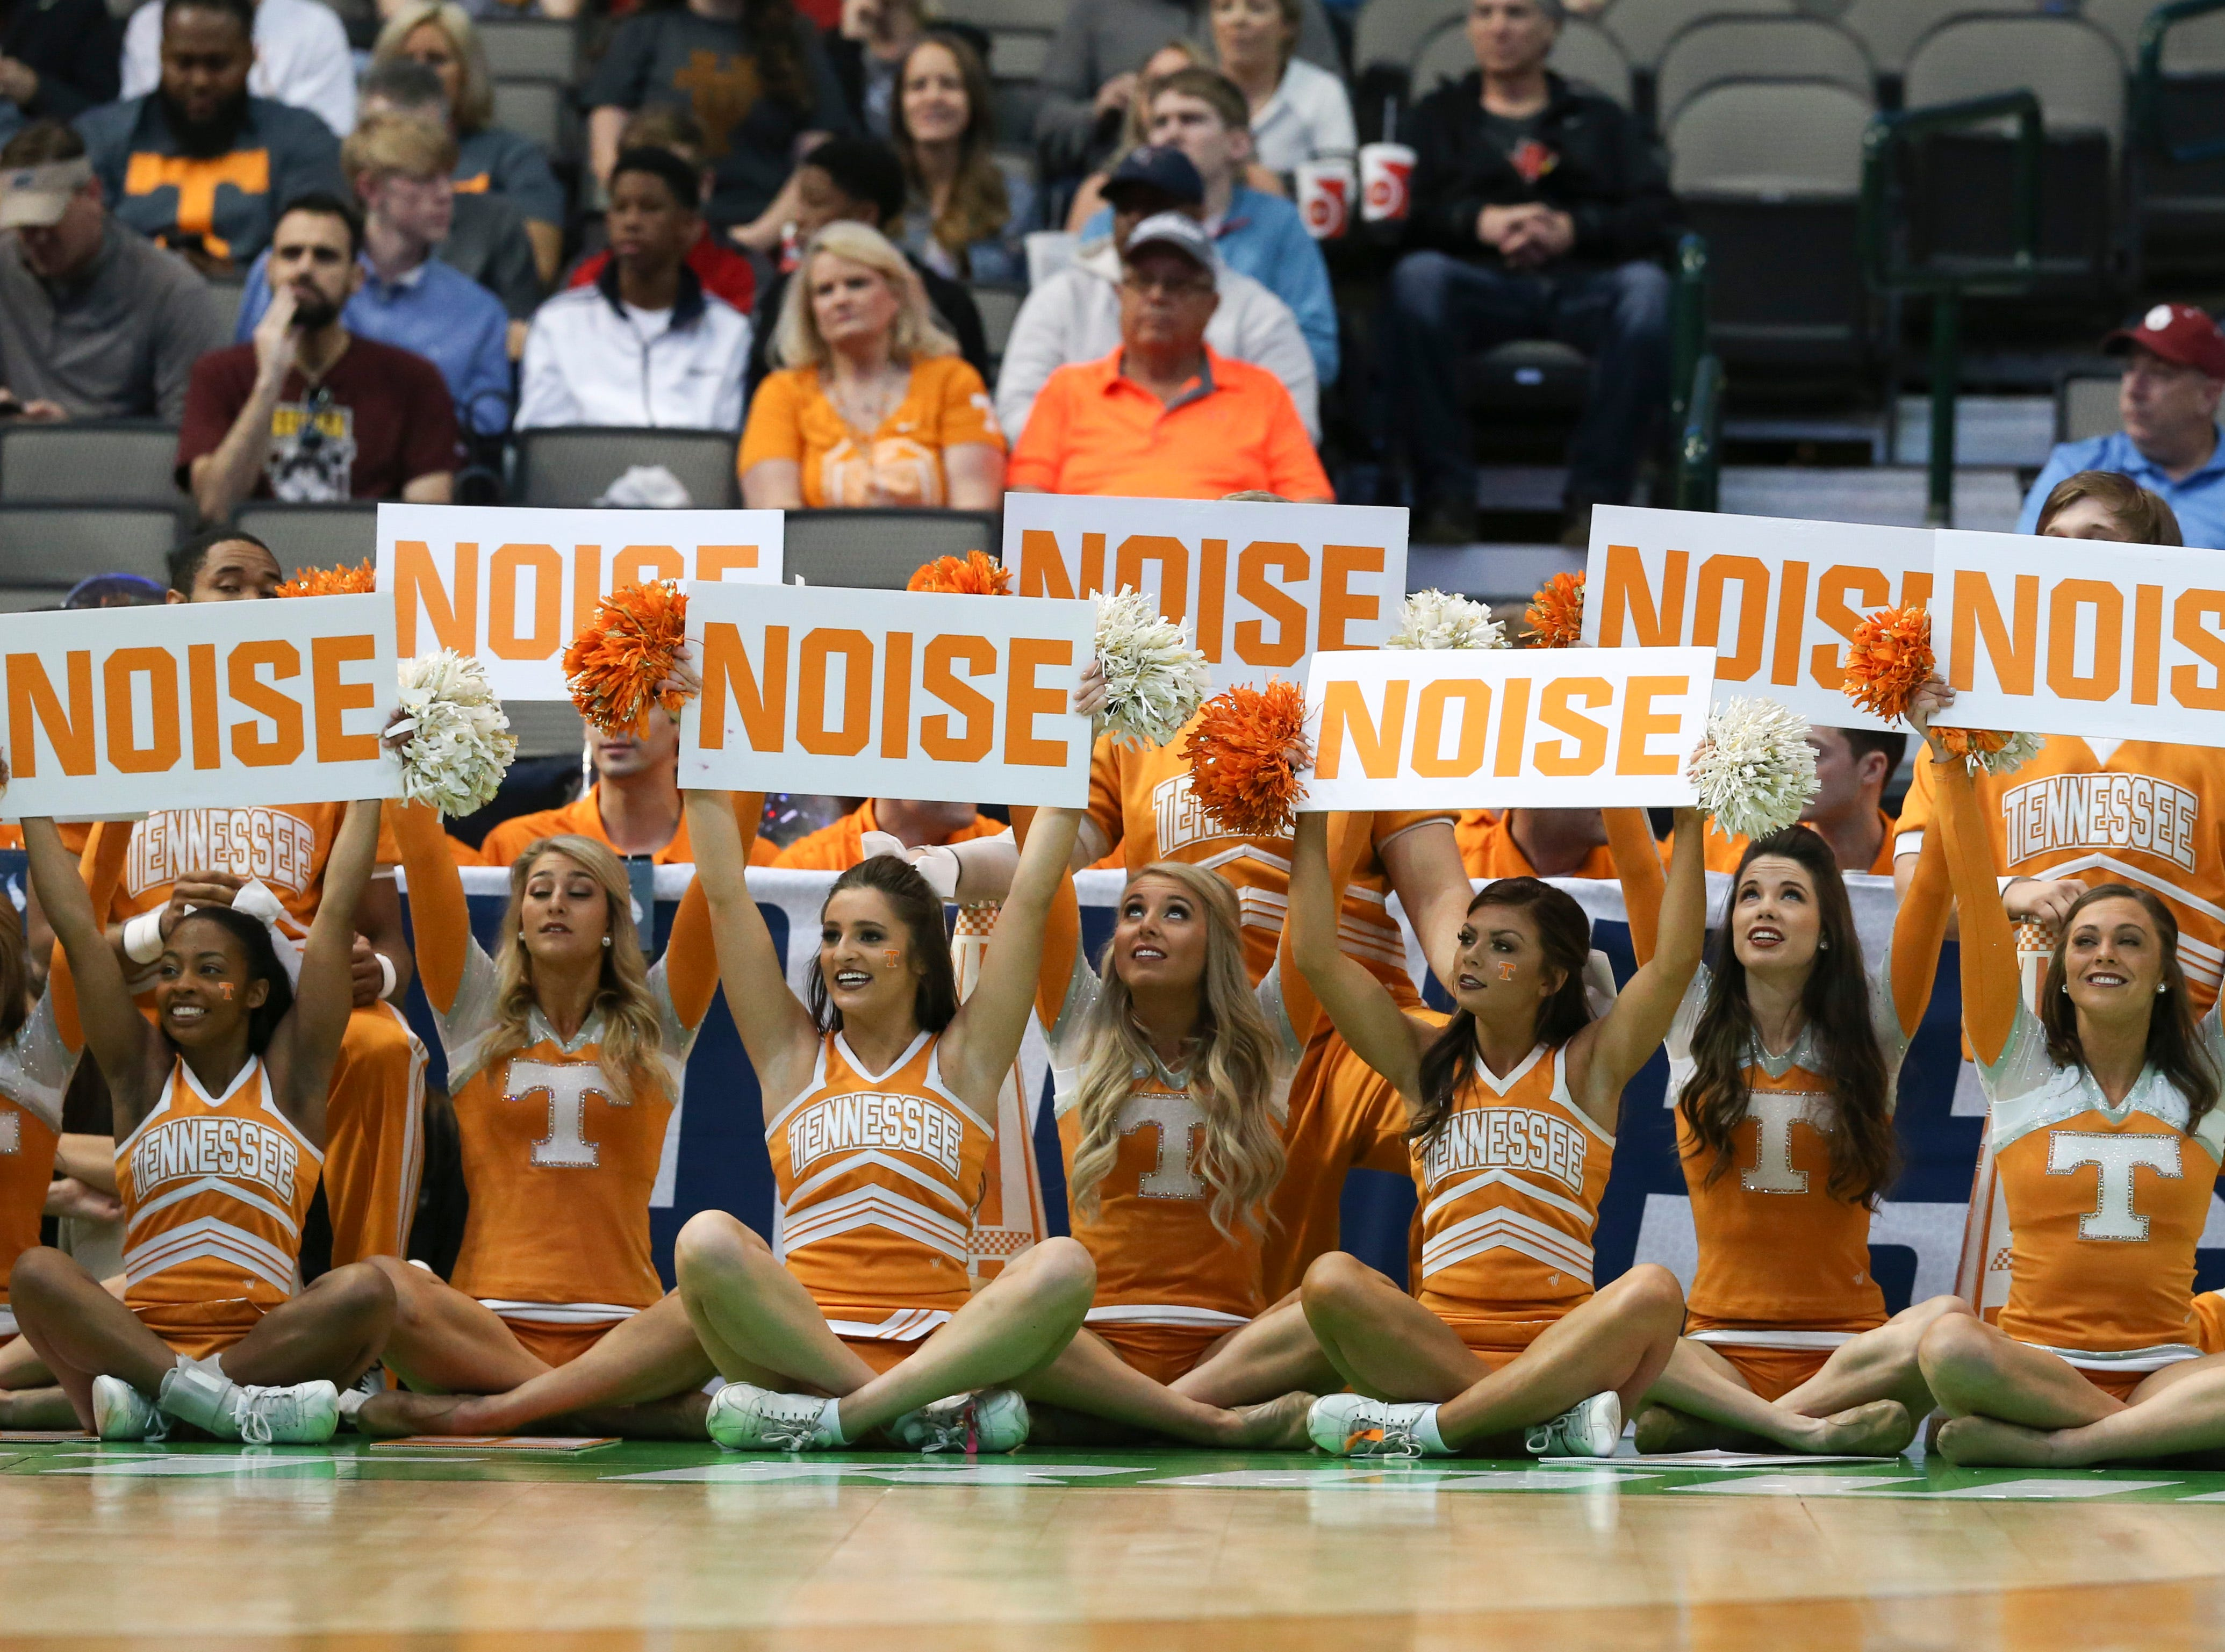 Mar 15, 2018; Dallas, TX, USA; Tennessee Volunteers cheerleaders during the first half against the Wright State Raiders in the first round of the 2018 NCAA Tournament at American Airlines Center.